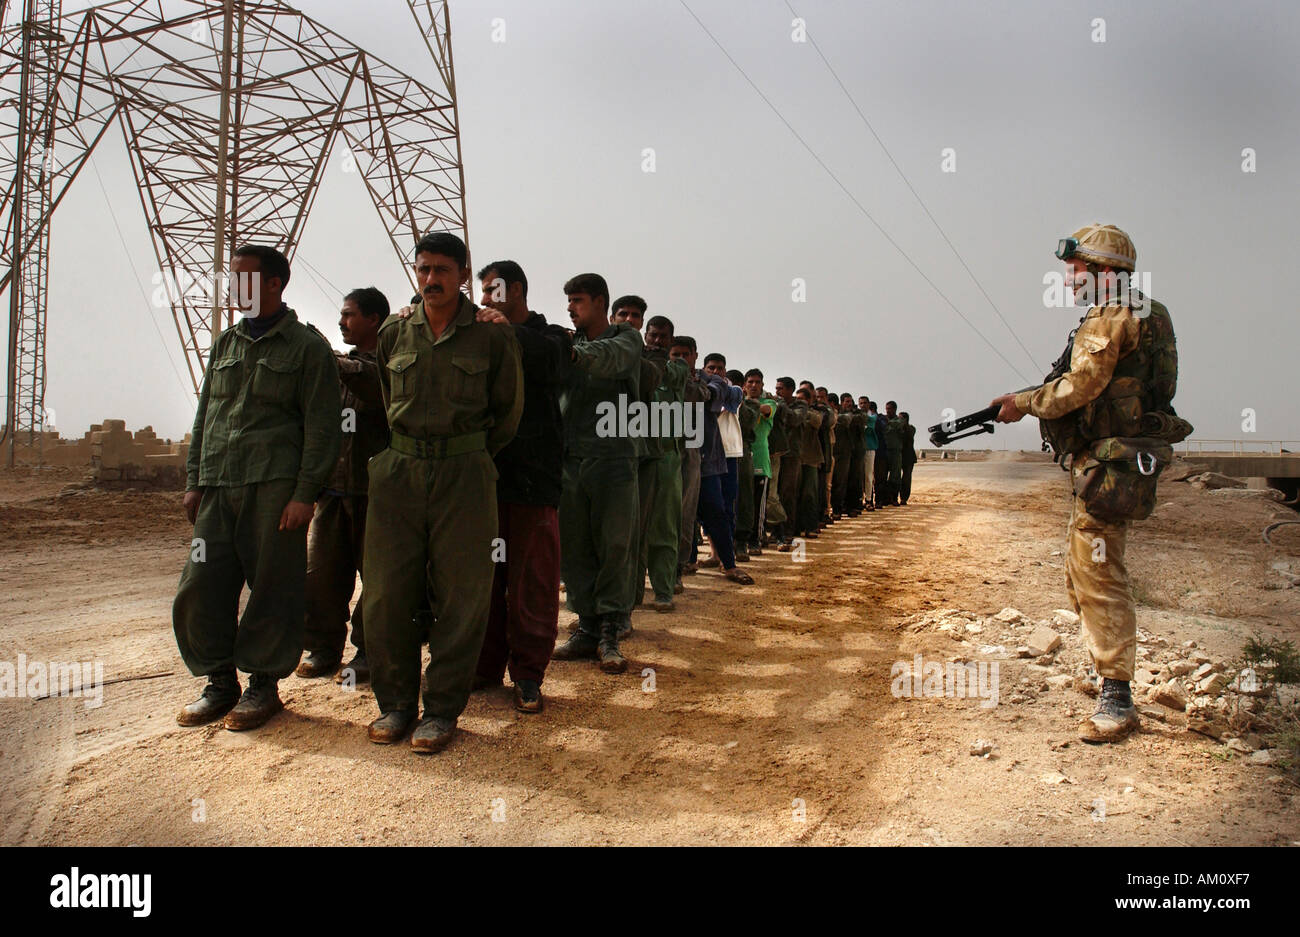 Iraqi Prisoners of War captured on the Al Faw penisular by Royal Marine Commandos on the morning of the invasion. - Stock Image